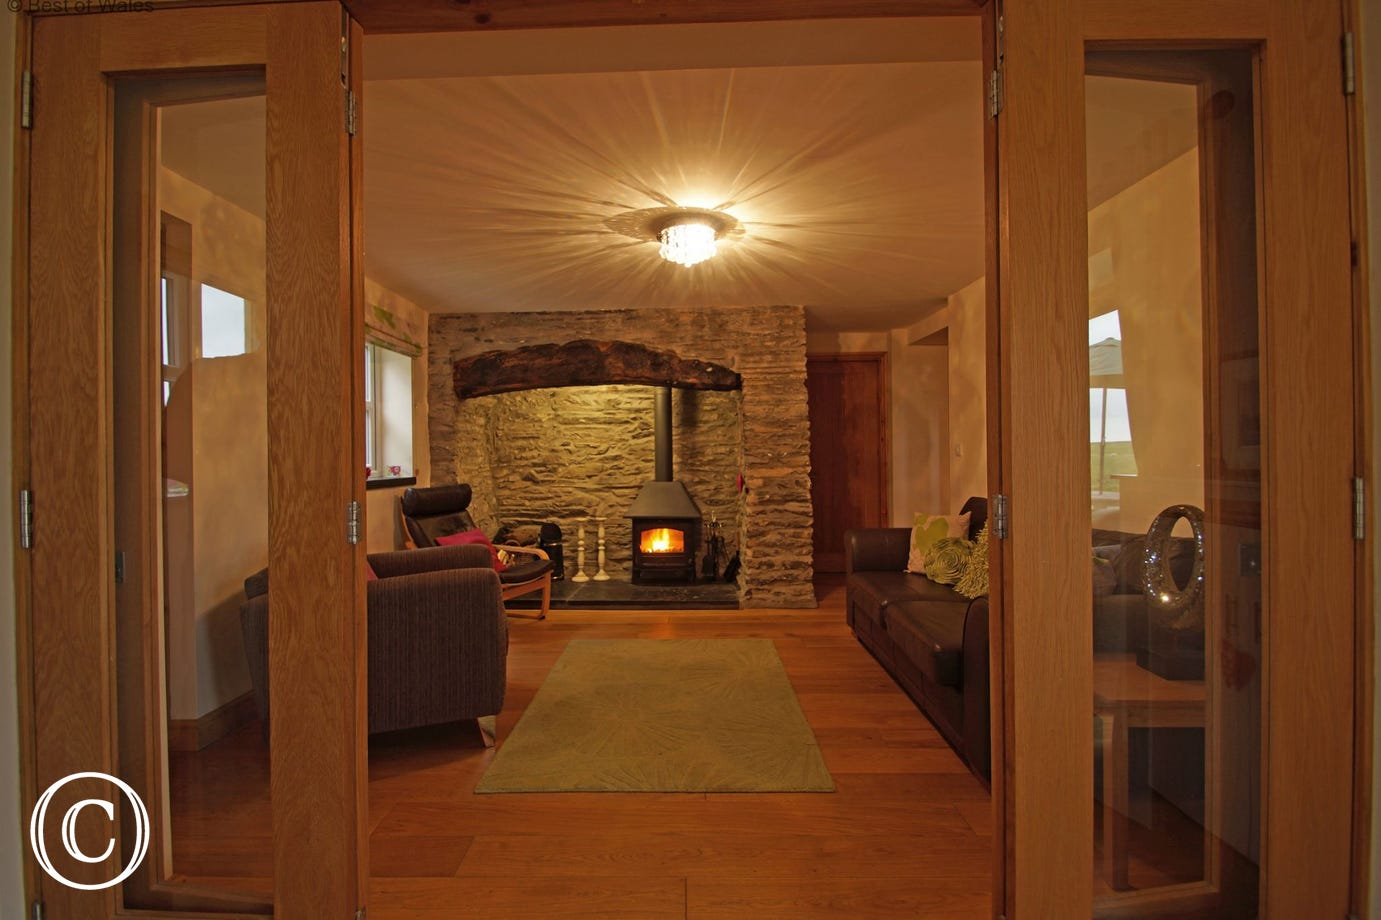 Cosy holiday accommodation in North Wales with a multi-fuel stove